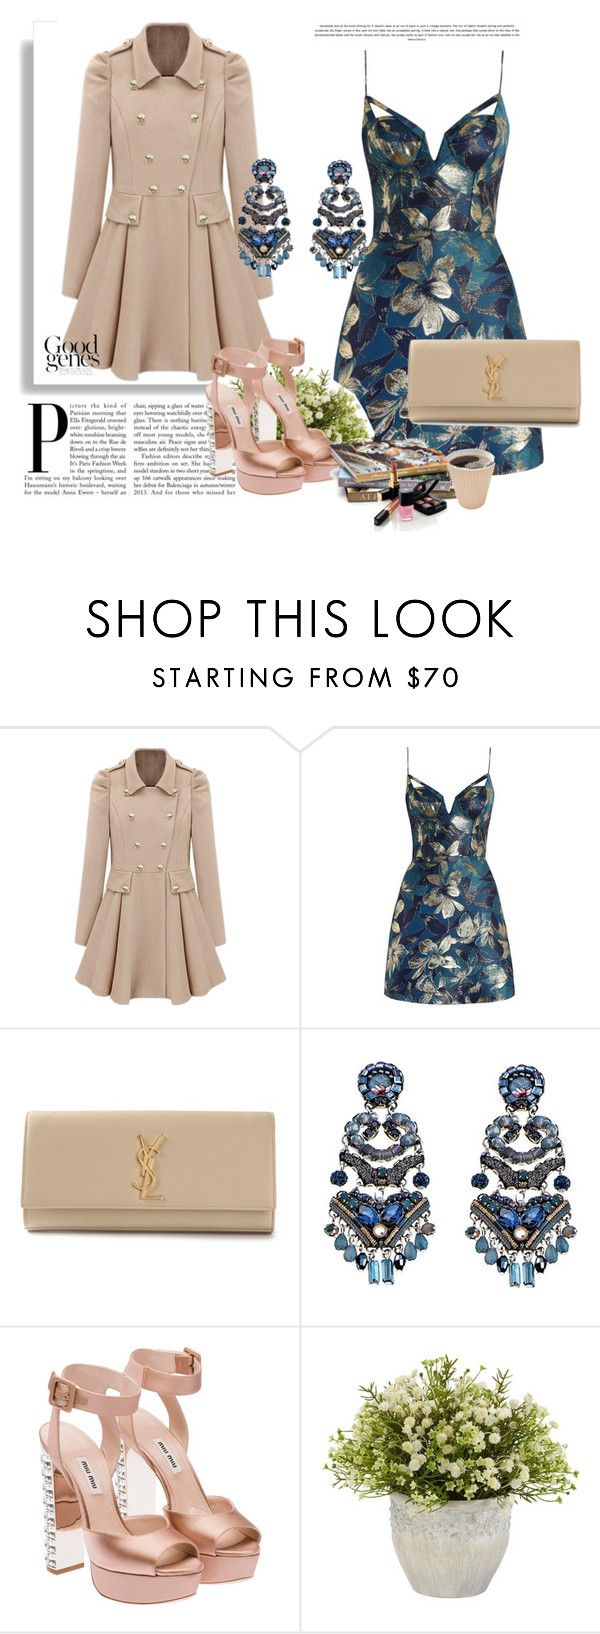 """Gabardina Beige"" by any-dazaperez ❤ liked on Polyvore featuring Zimmermann, Yves Saint Laurent, Ayala Bar, Miu Miu, Nearly Natural and Chanel"